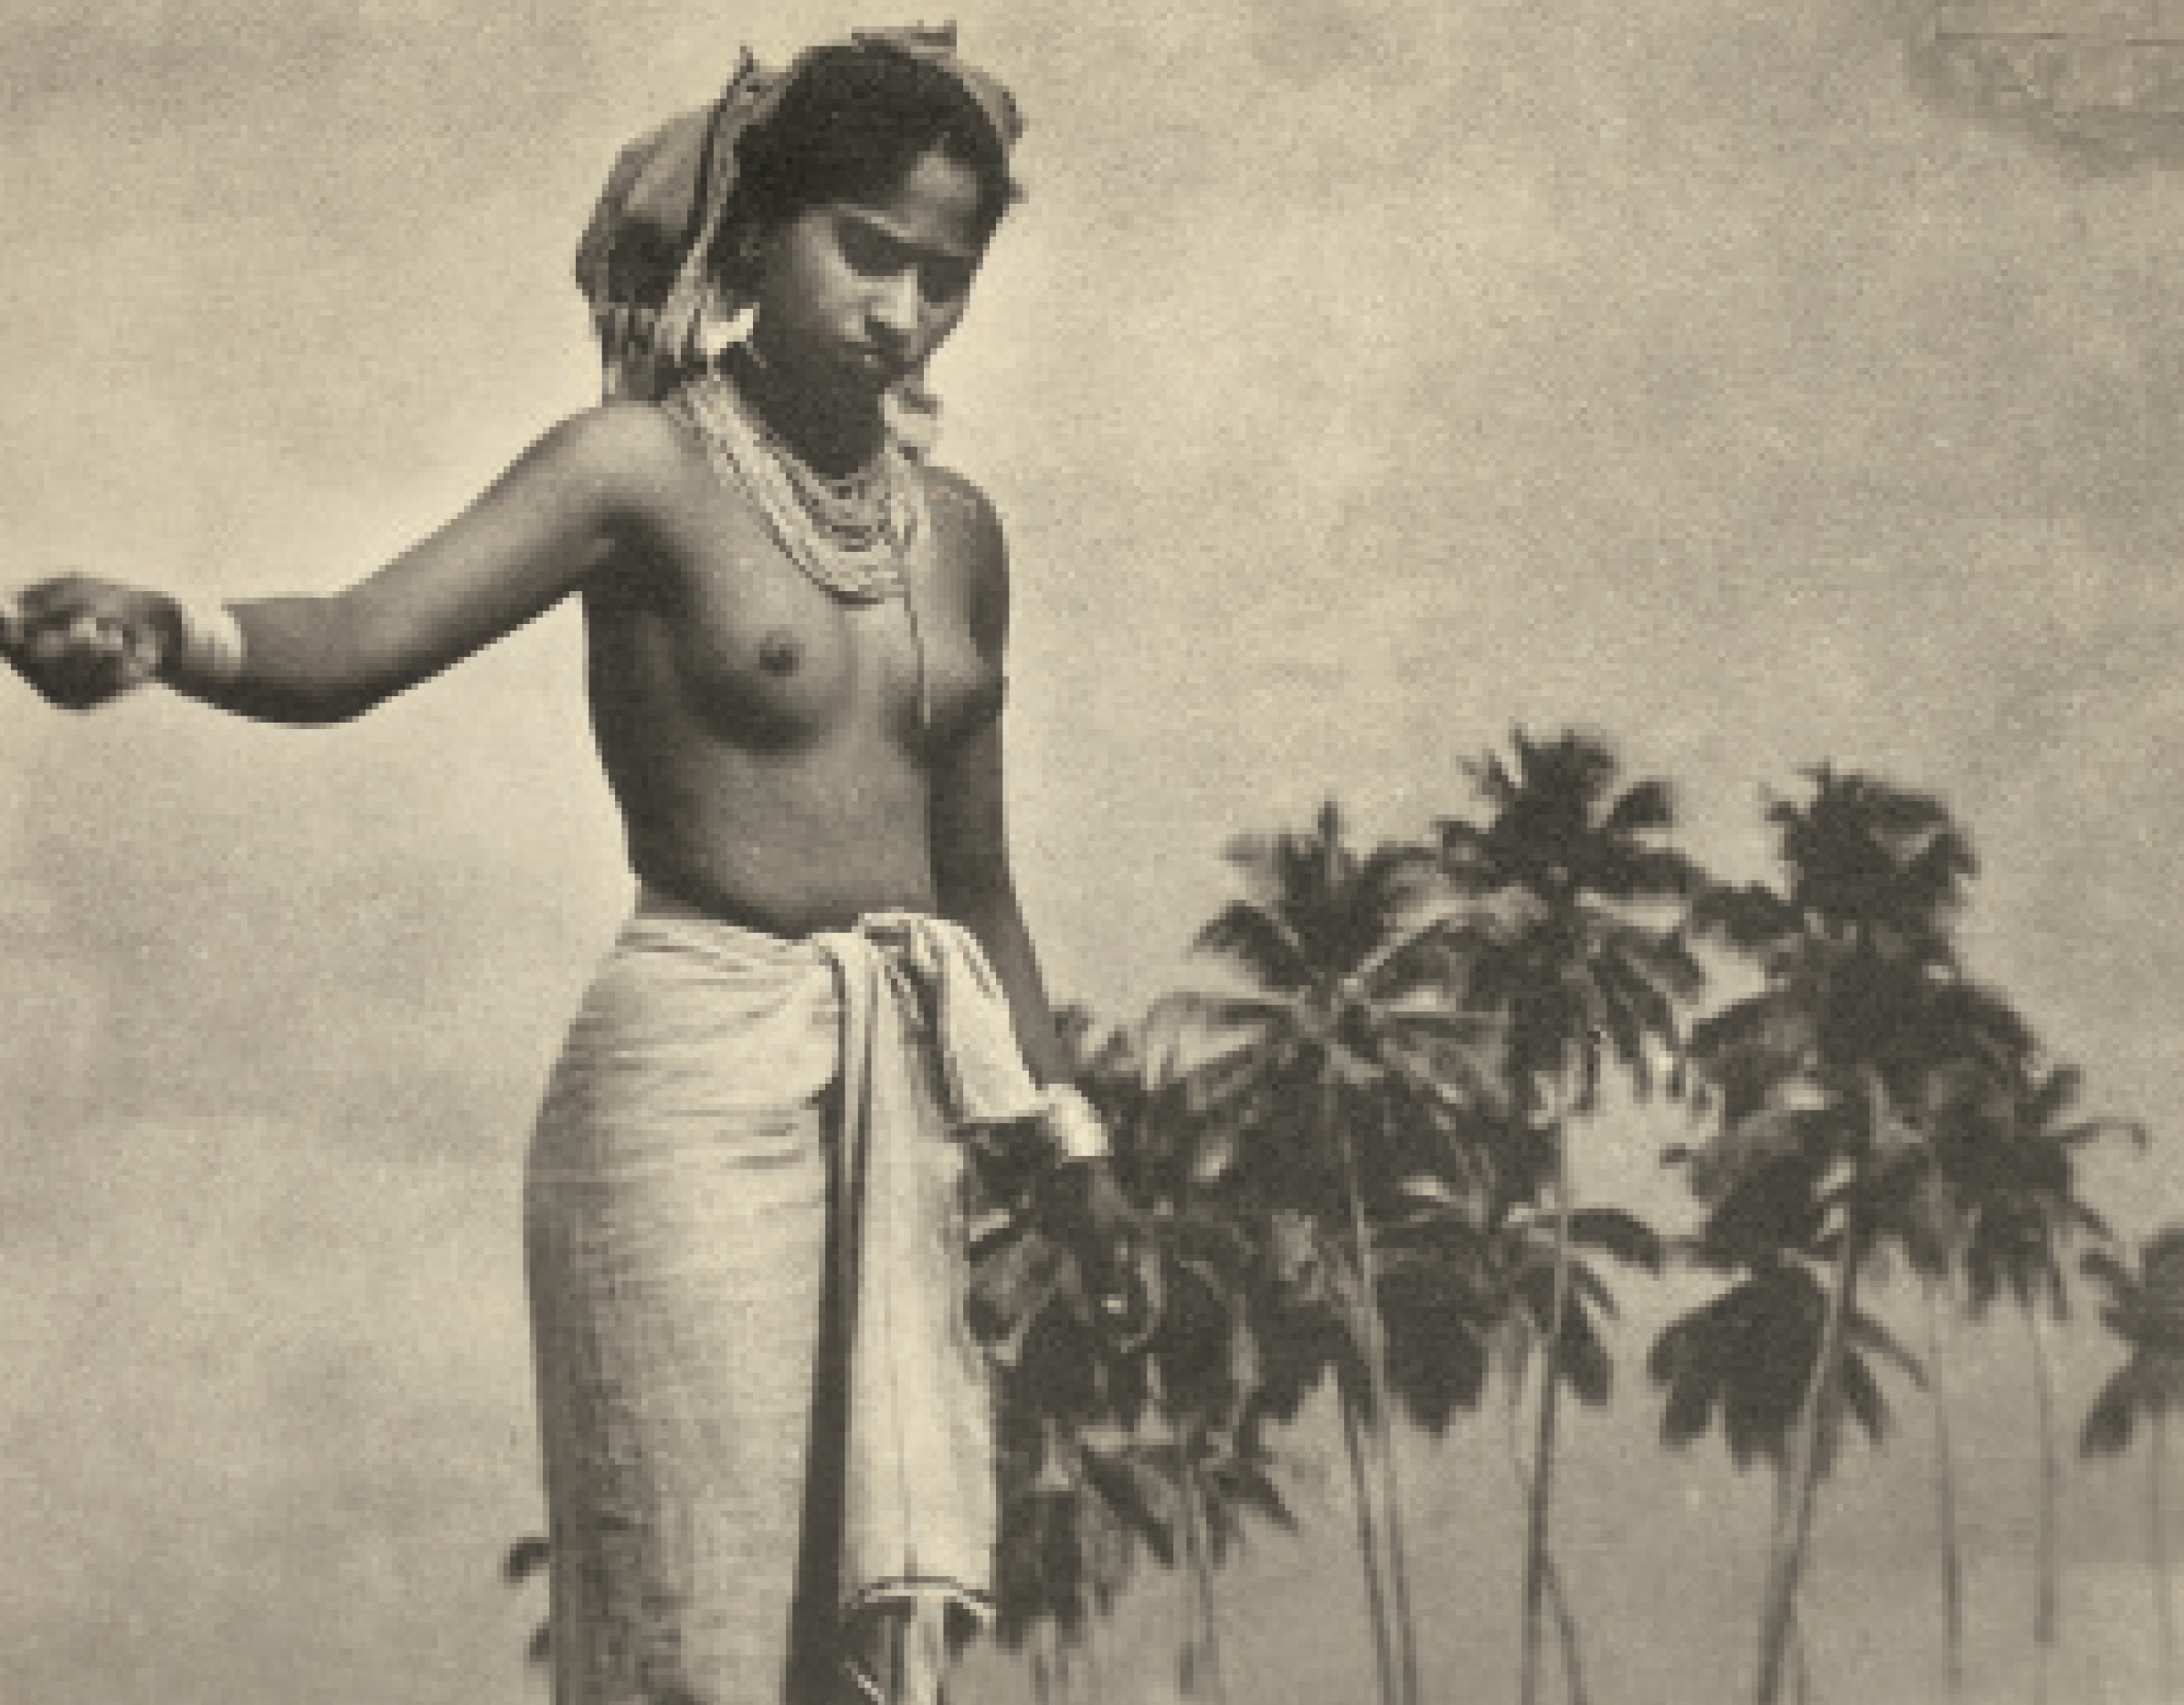 A photograph from the Swaraj Art Archive